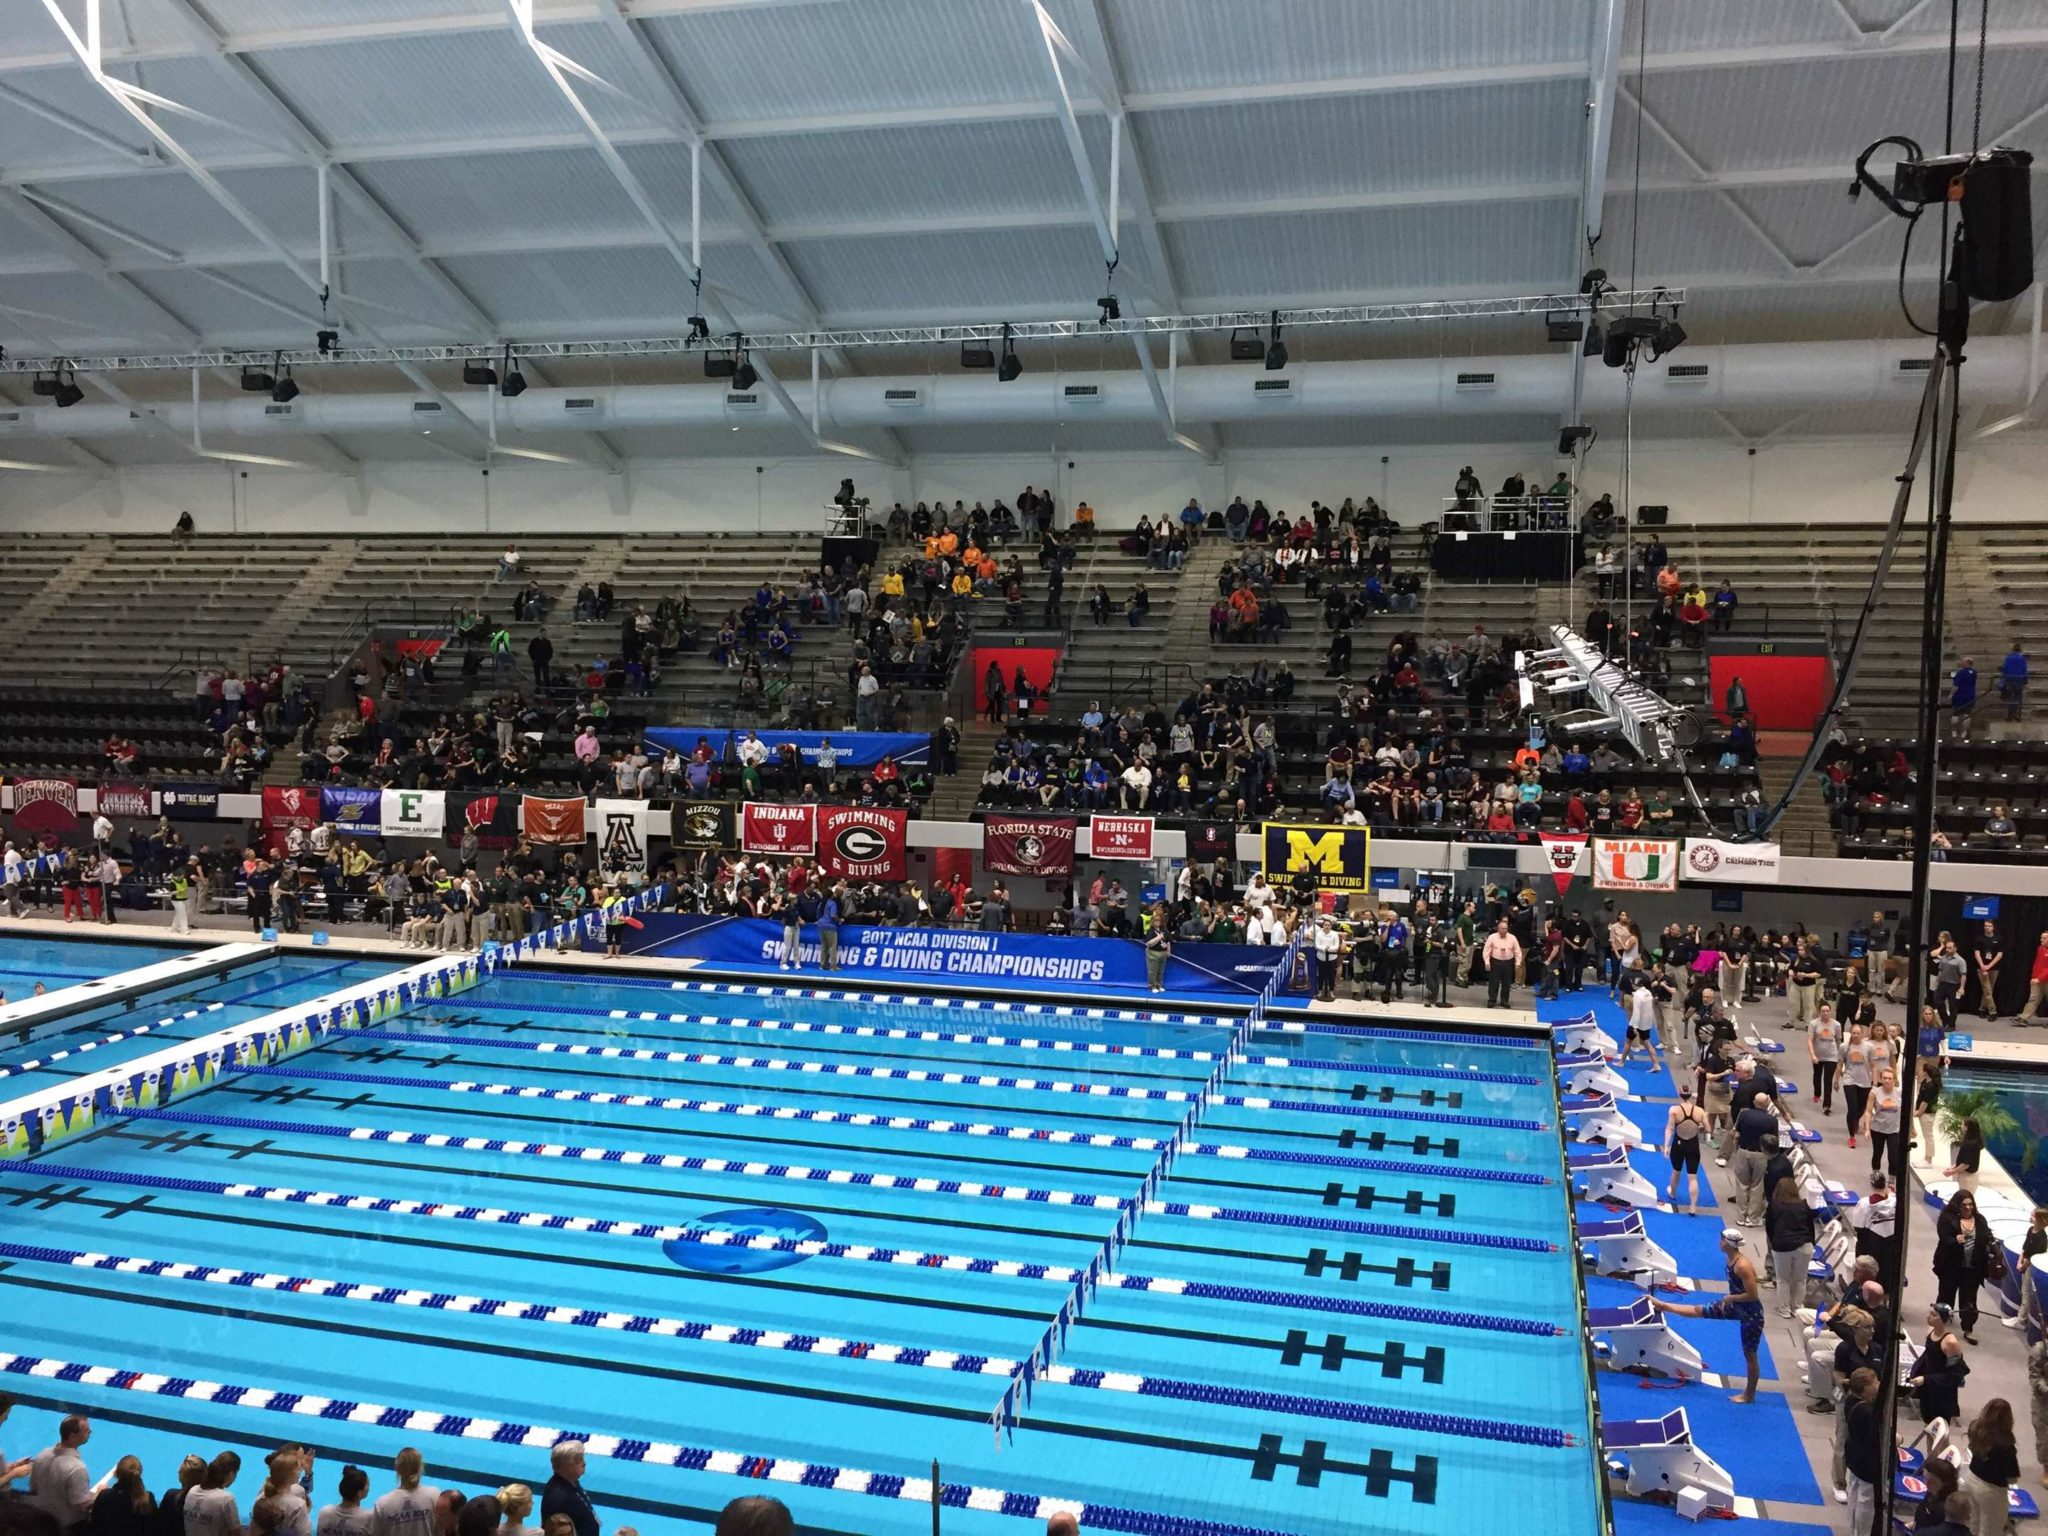 db2d0b5a9b AAC Championships Set to Begin Wednesday in Indianapolis